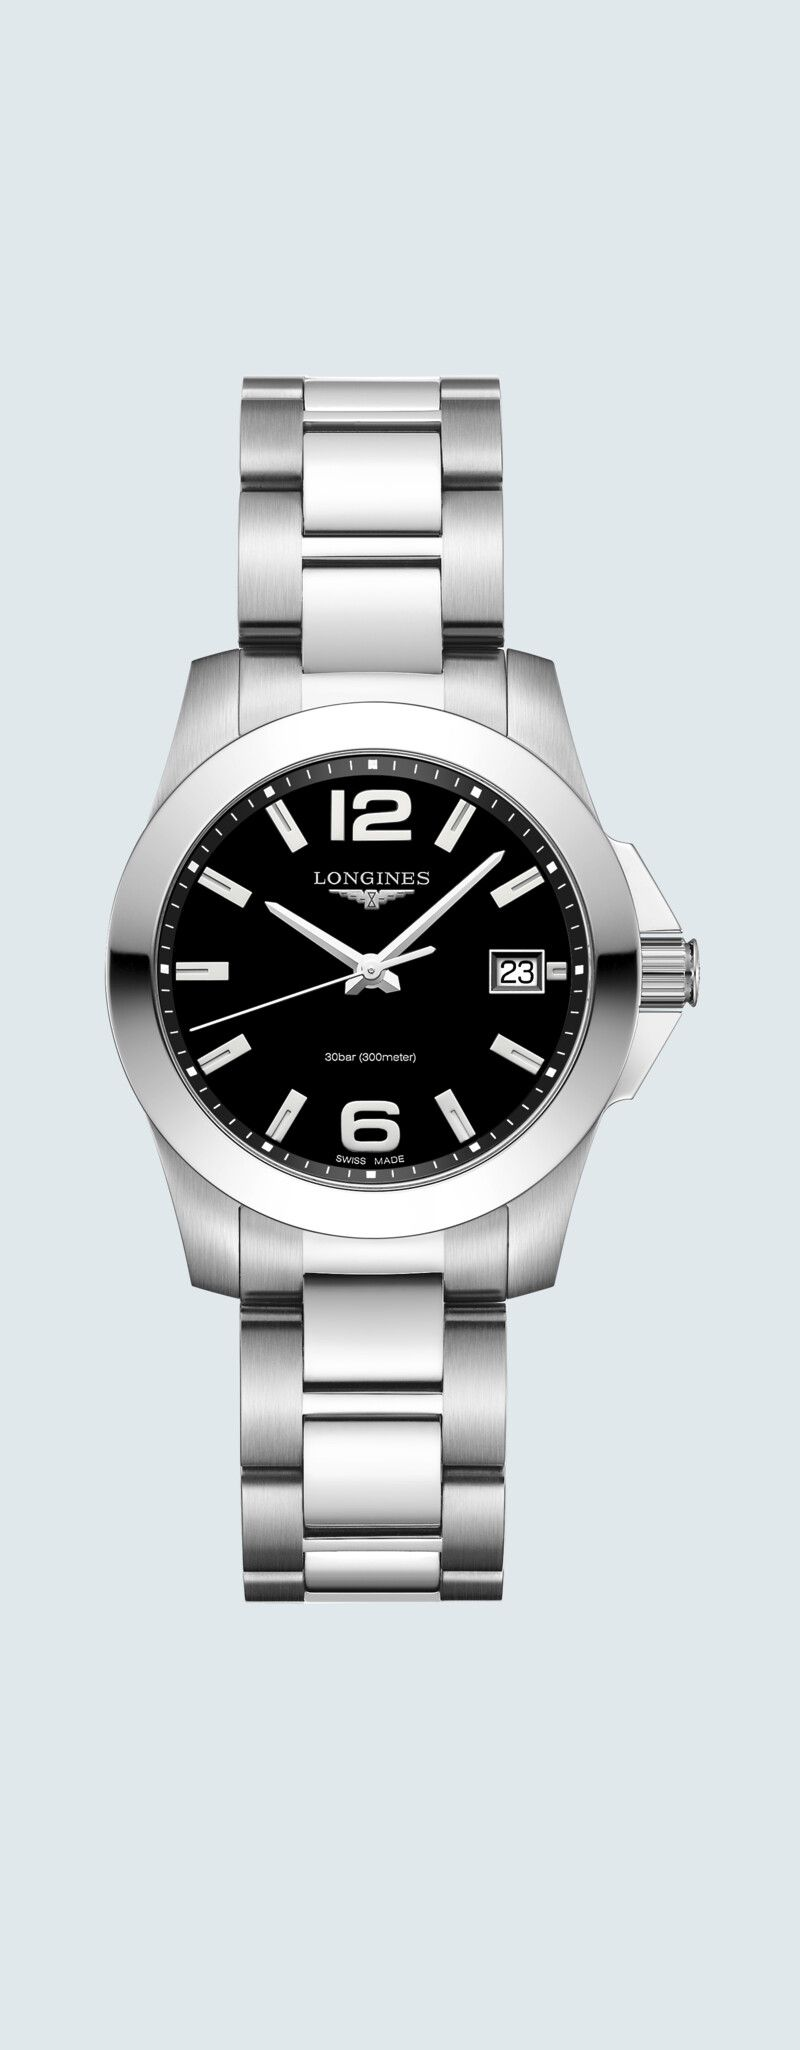 34.00 mm Edelstahl case with Schwarz lackiert, poliert dial and Edelstahl strap - case zoom view